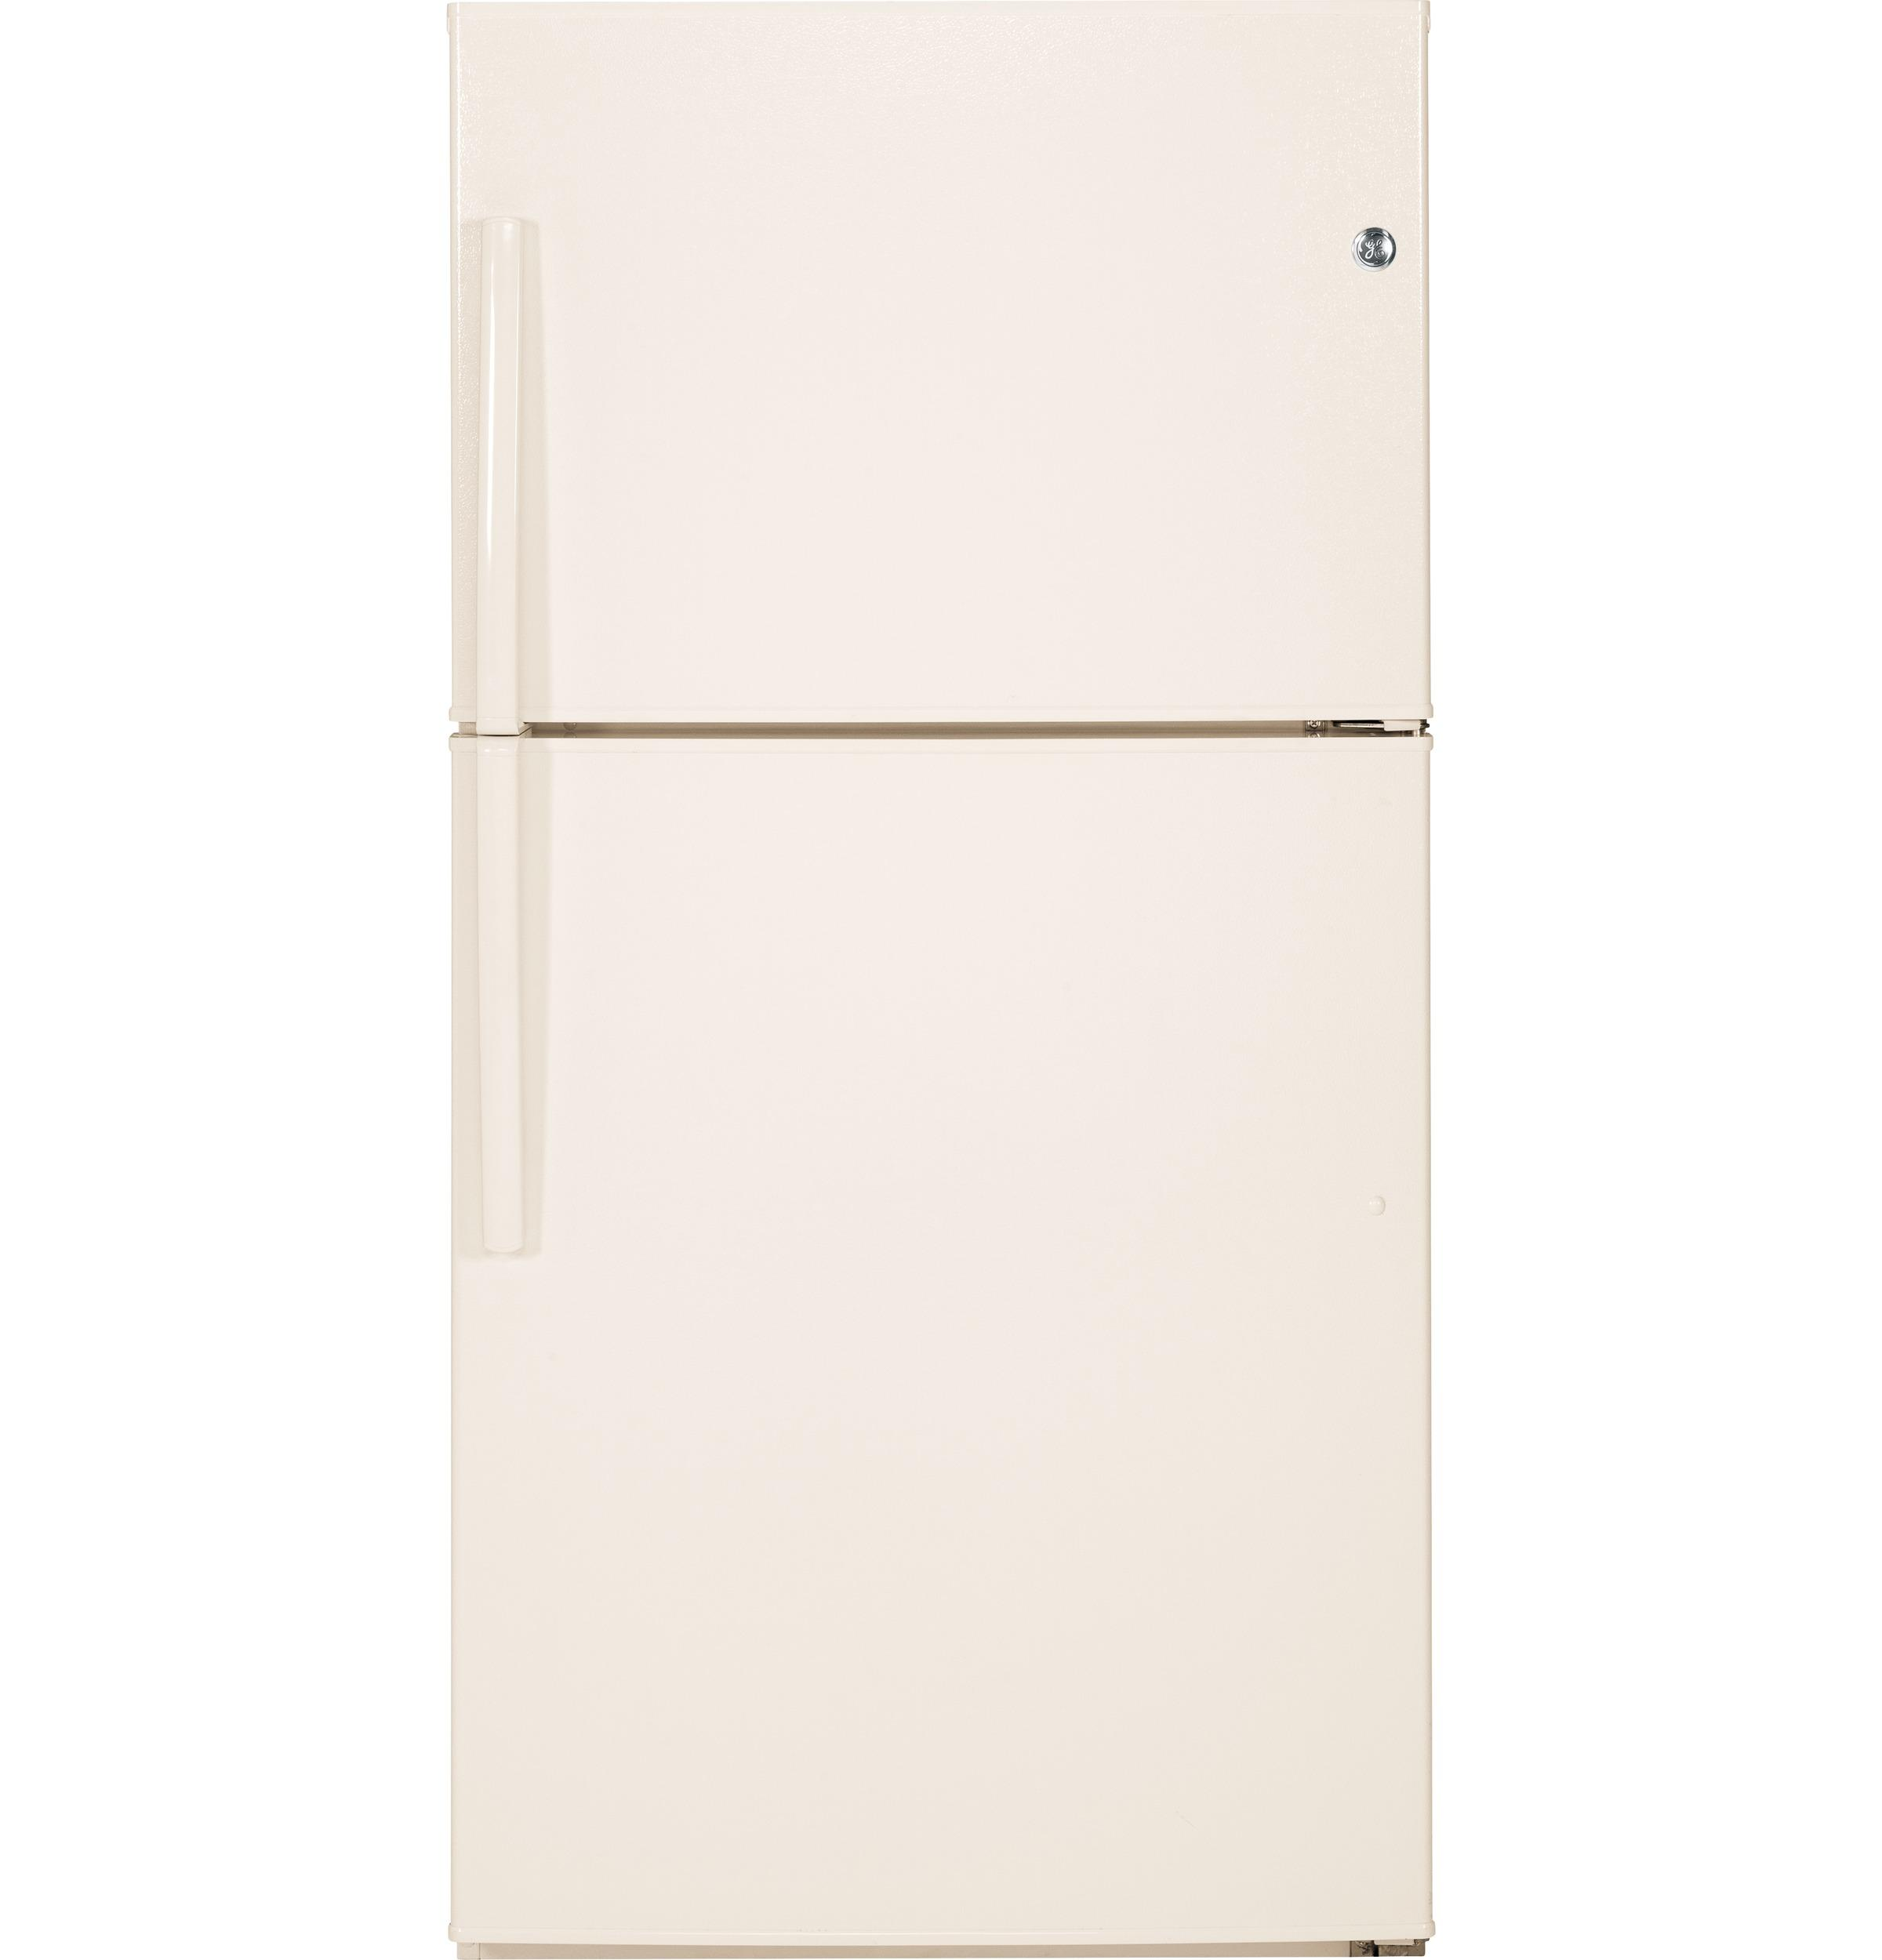 GE(R) ENERGY STAR(R) 21.2 Cu. Ft. Top-Freezer Refrigerator